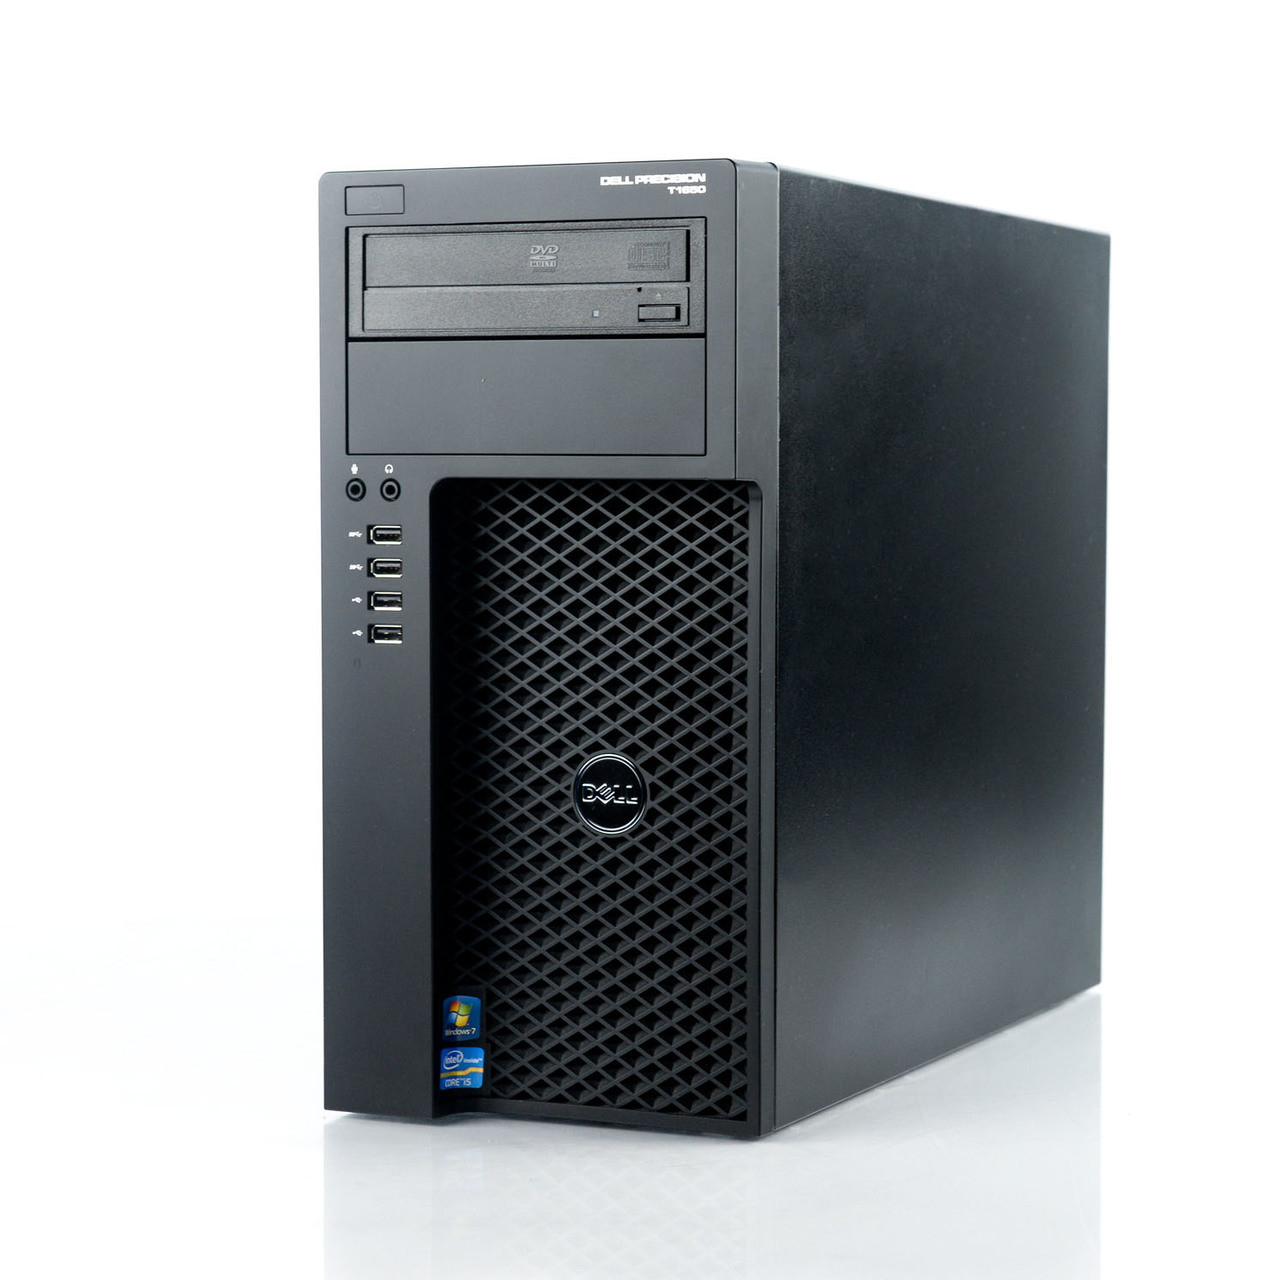 DELL PRECISION T1650 AMD GRAPHICS DRIVERS FOR WINDOWS MAC